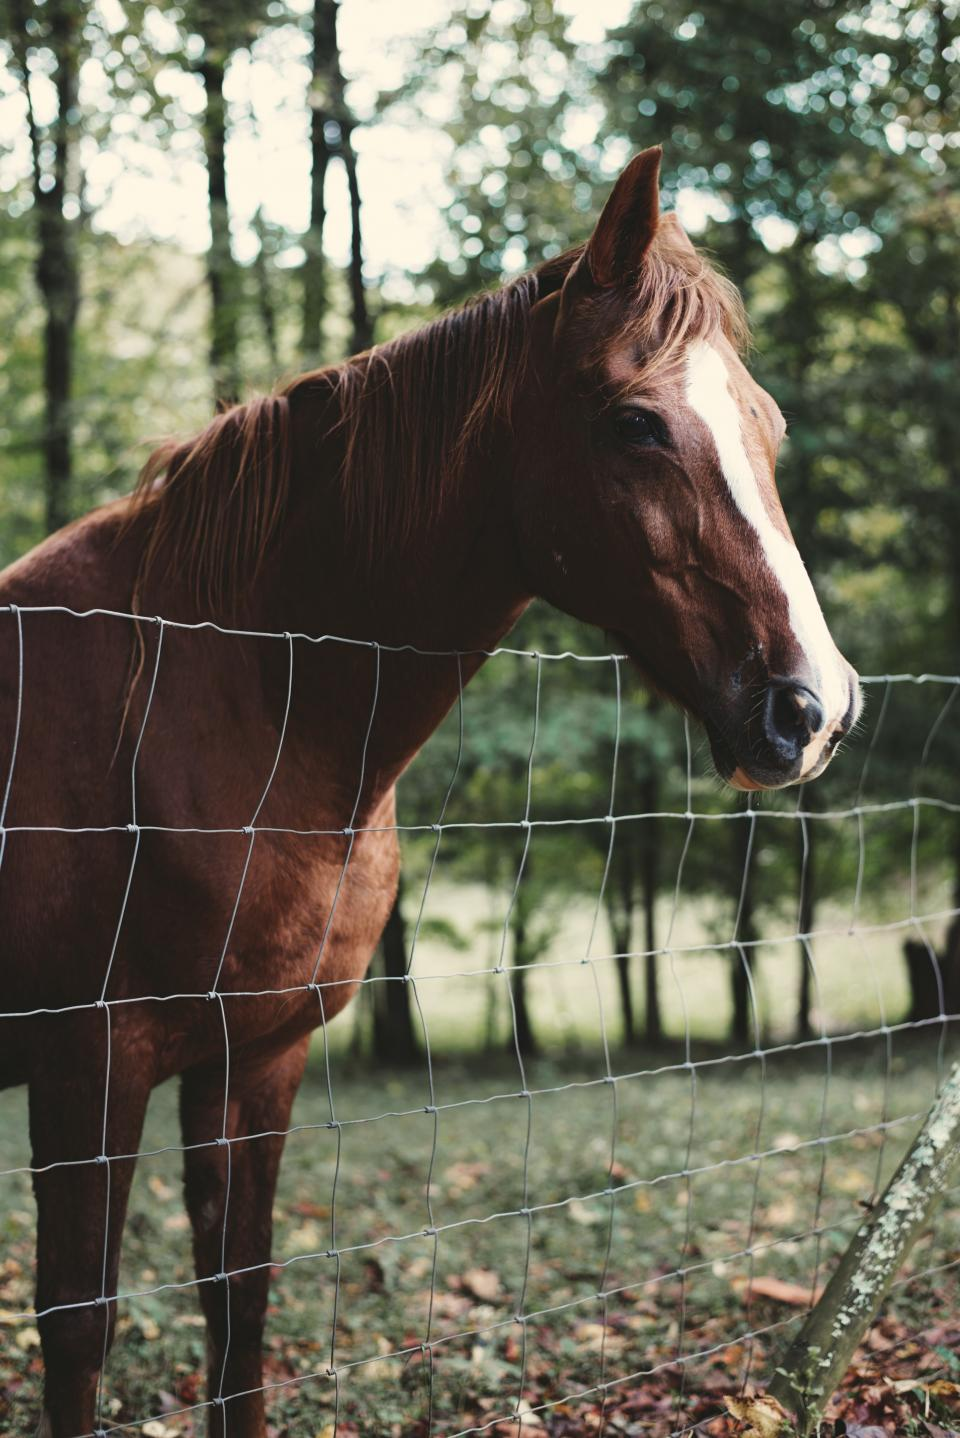 horse animal close up brown trees grass leaves autumn fall fence